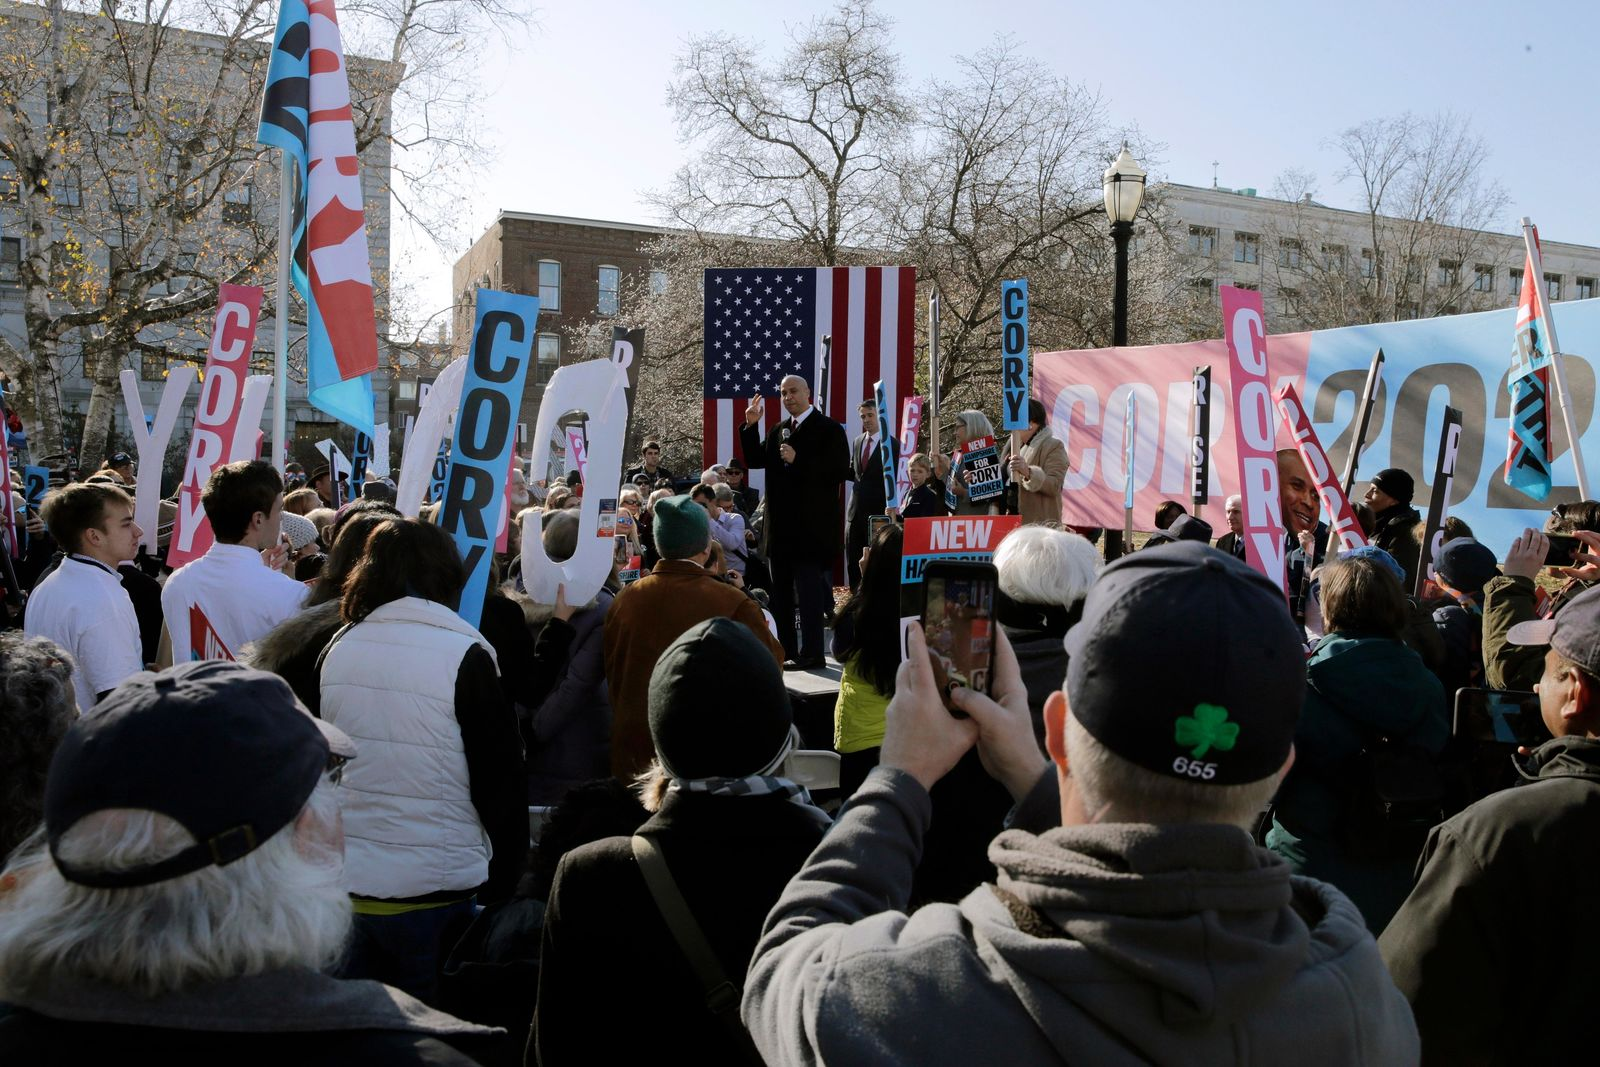 Democratic presidential candidate Sen. Cory Booker, D-N.J., addresses supporters outside the State House after filing to have his name listed on the New Hampshire primary ballot, Friday, Nov. 15, 2019, in Concord, N.H. (AP Photo/Charles Krupa)